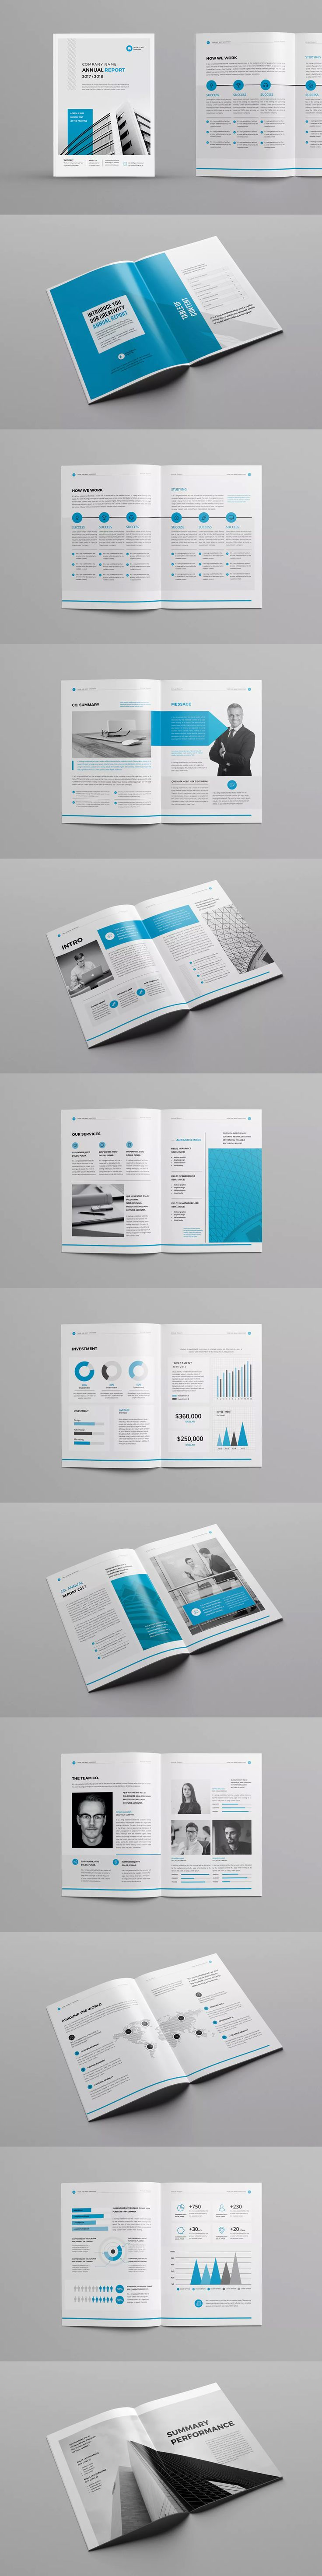 Best Annual Report Design Images On   Annual Reports